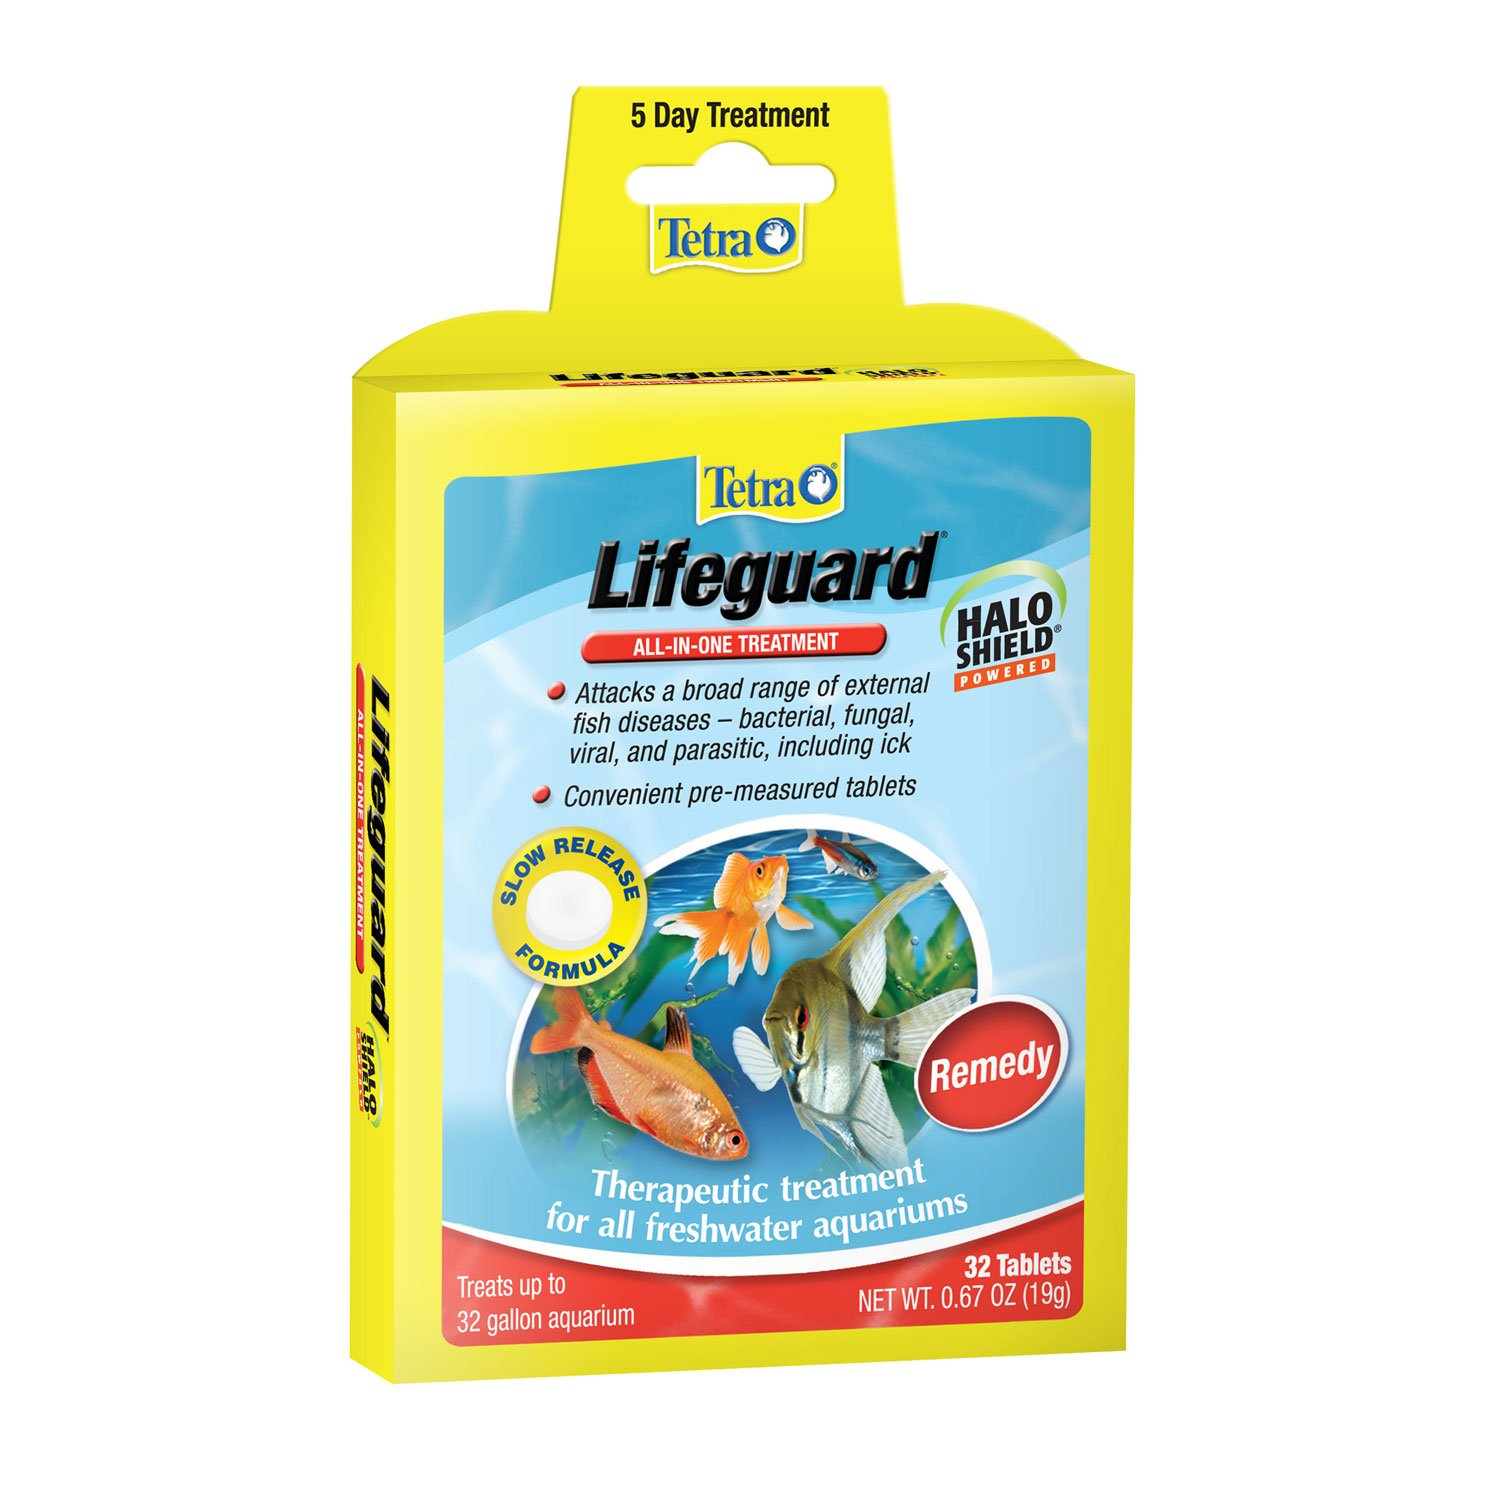 Tetra lifeguard all in one freshwater aquarium treatment for Fish ick treatment